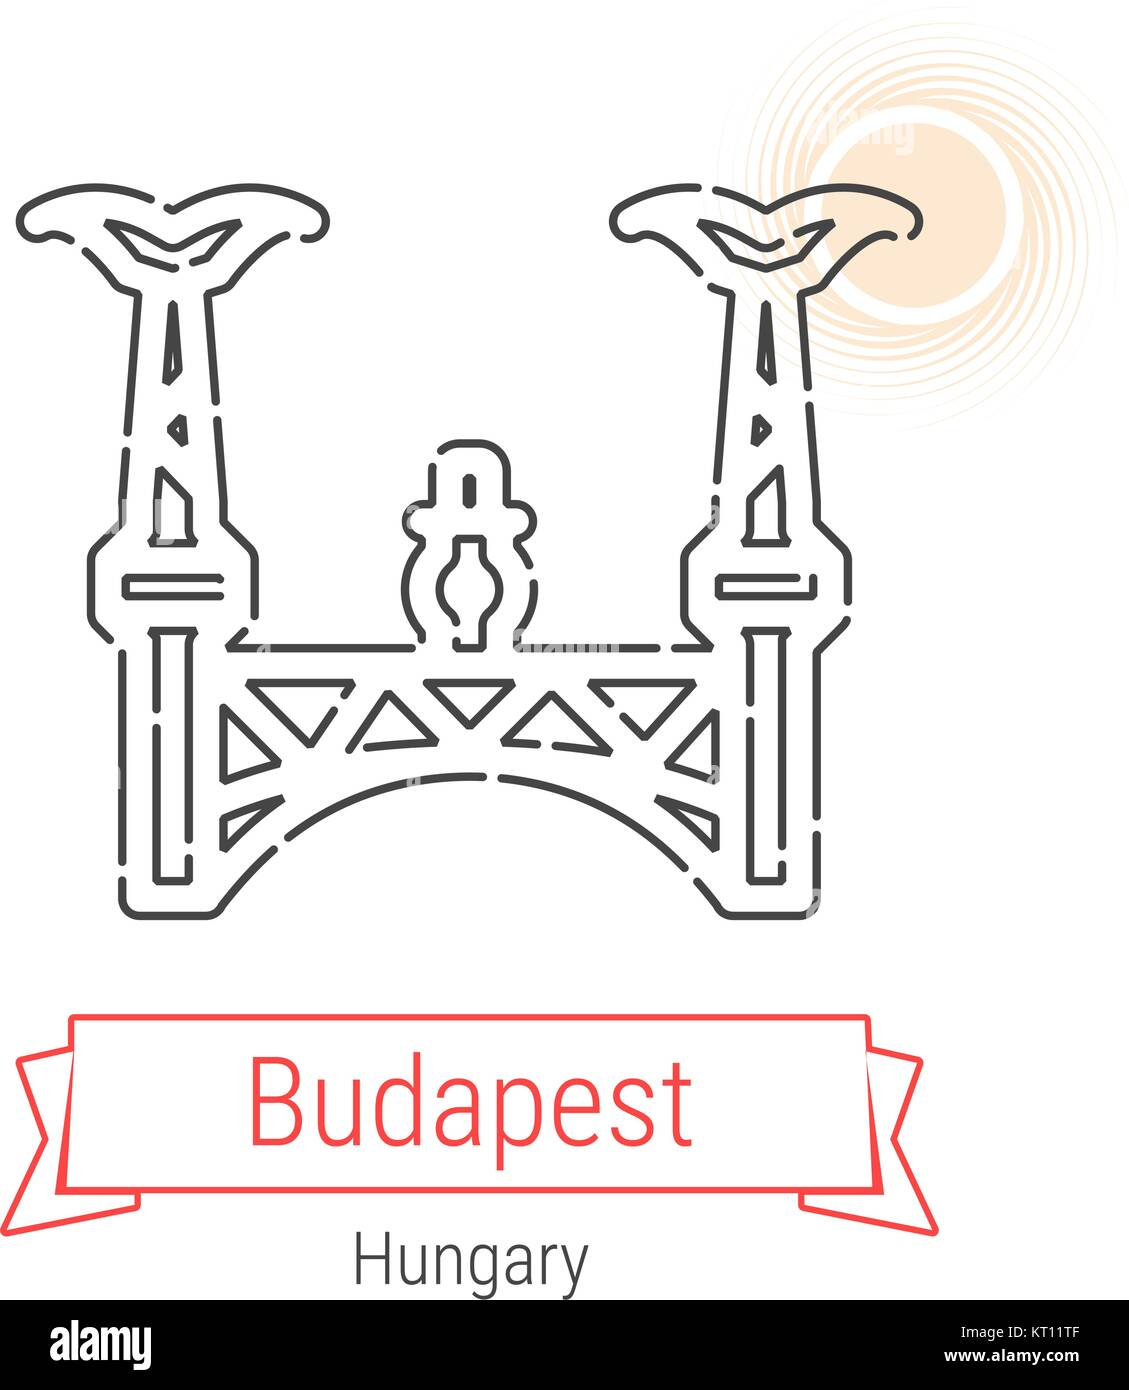 Budapest, Hungary Vector Line Icon - Stock Vector